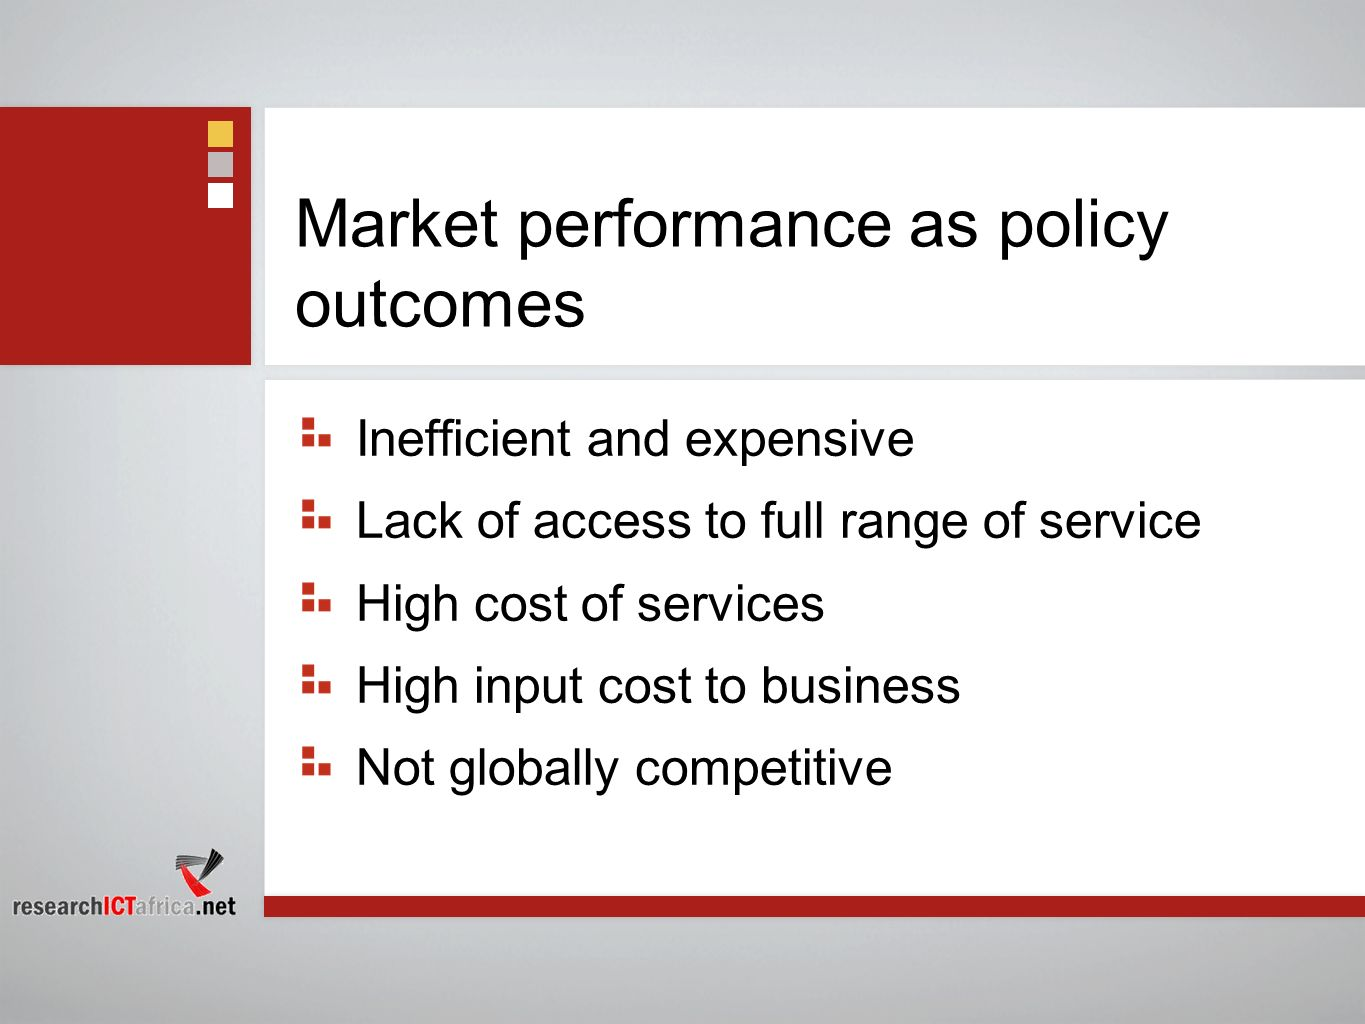 Market performance as policy outcomes